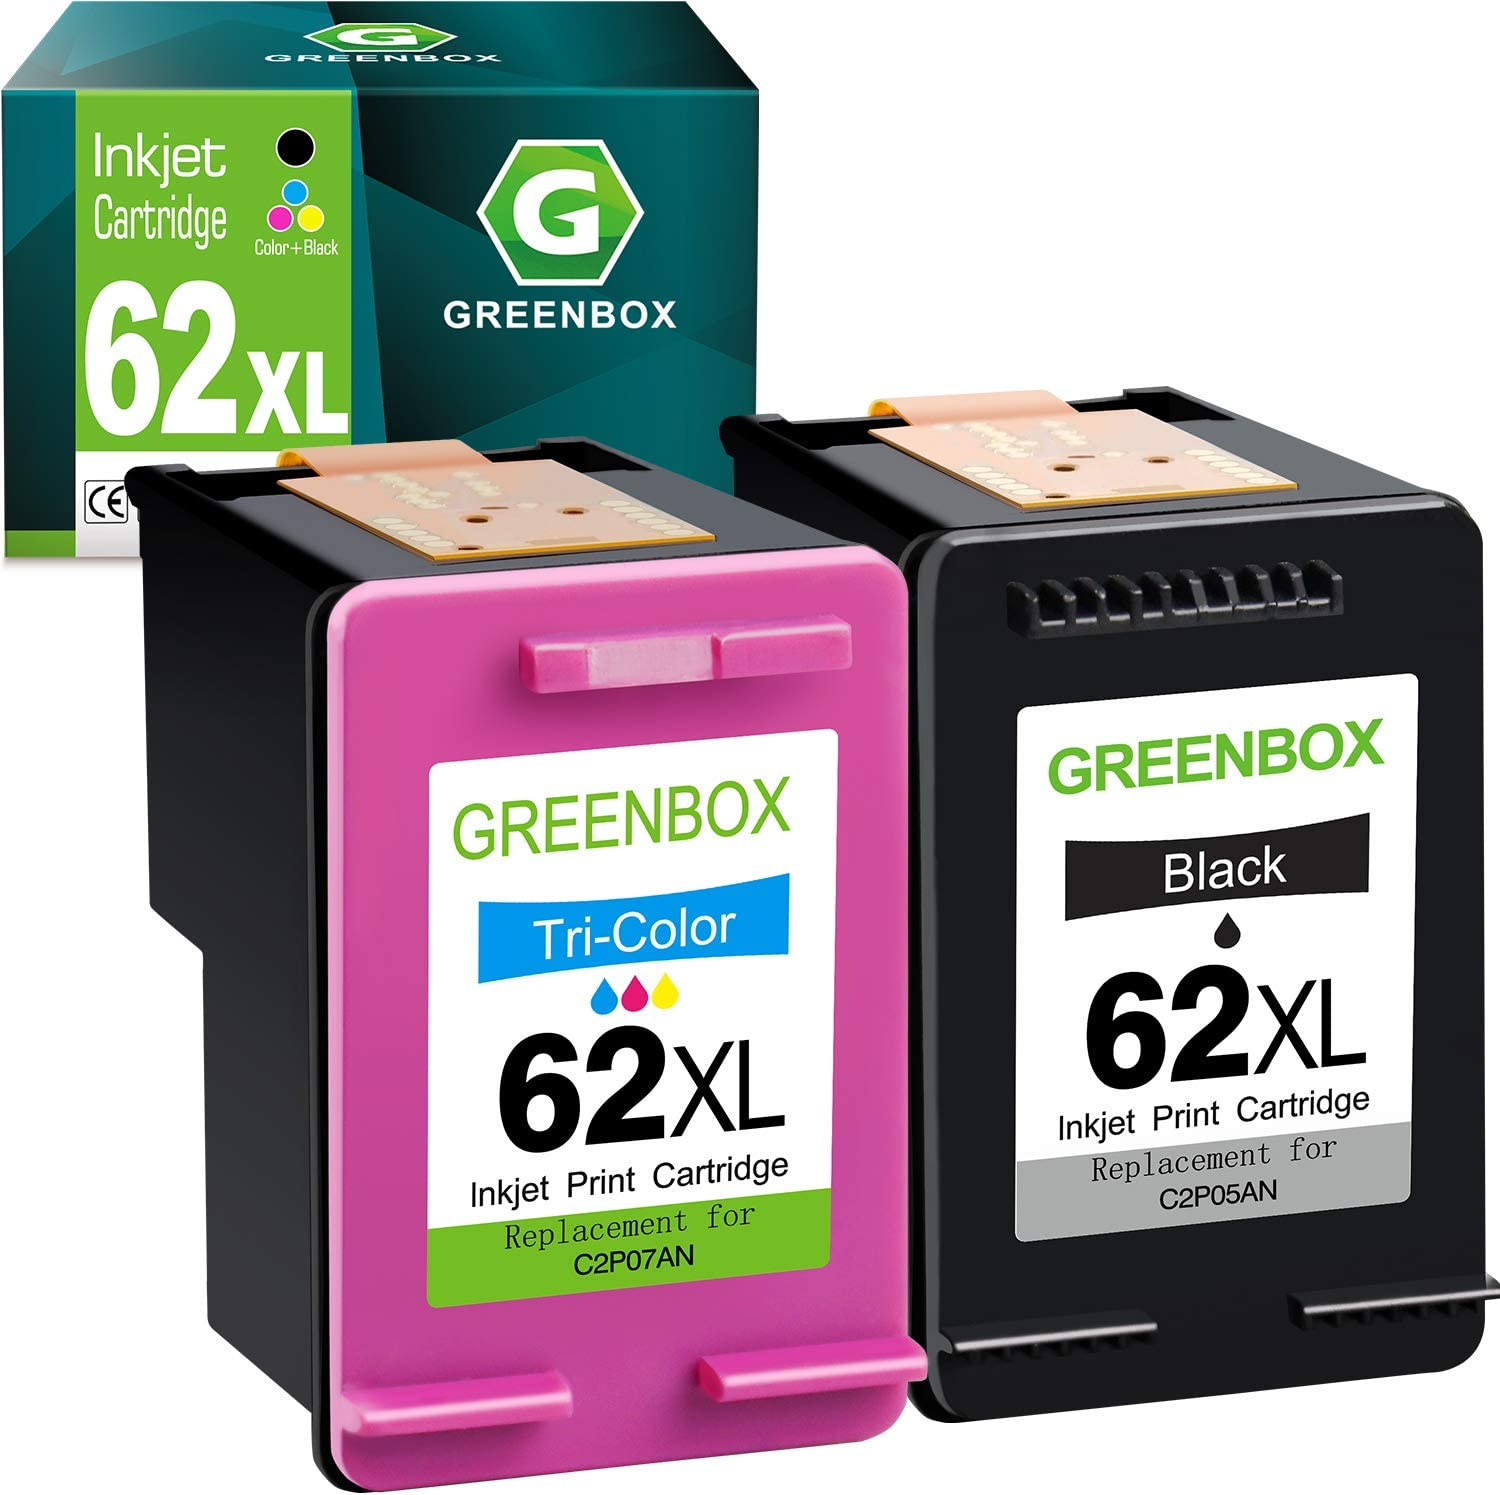 GREENBOX Remanufactured Ink Cartridge Replacement for HP 62XL 62 XL for HP Envy 5540 5640 5660 7644 7645 OfficeJet 5740 8040 OfficeJet 200 250 Series Printer (1 Black 1 Tri-Color)